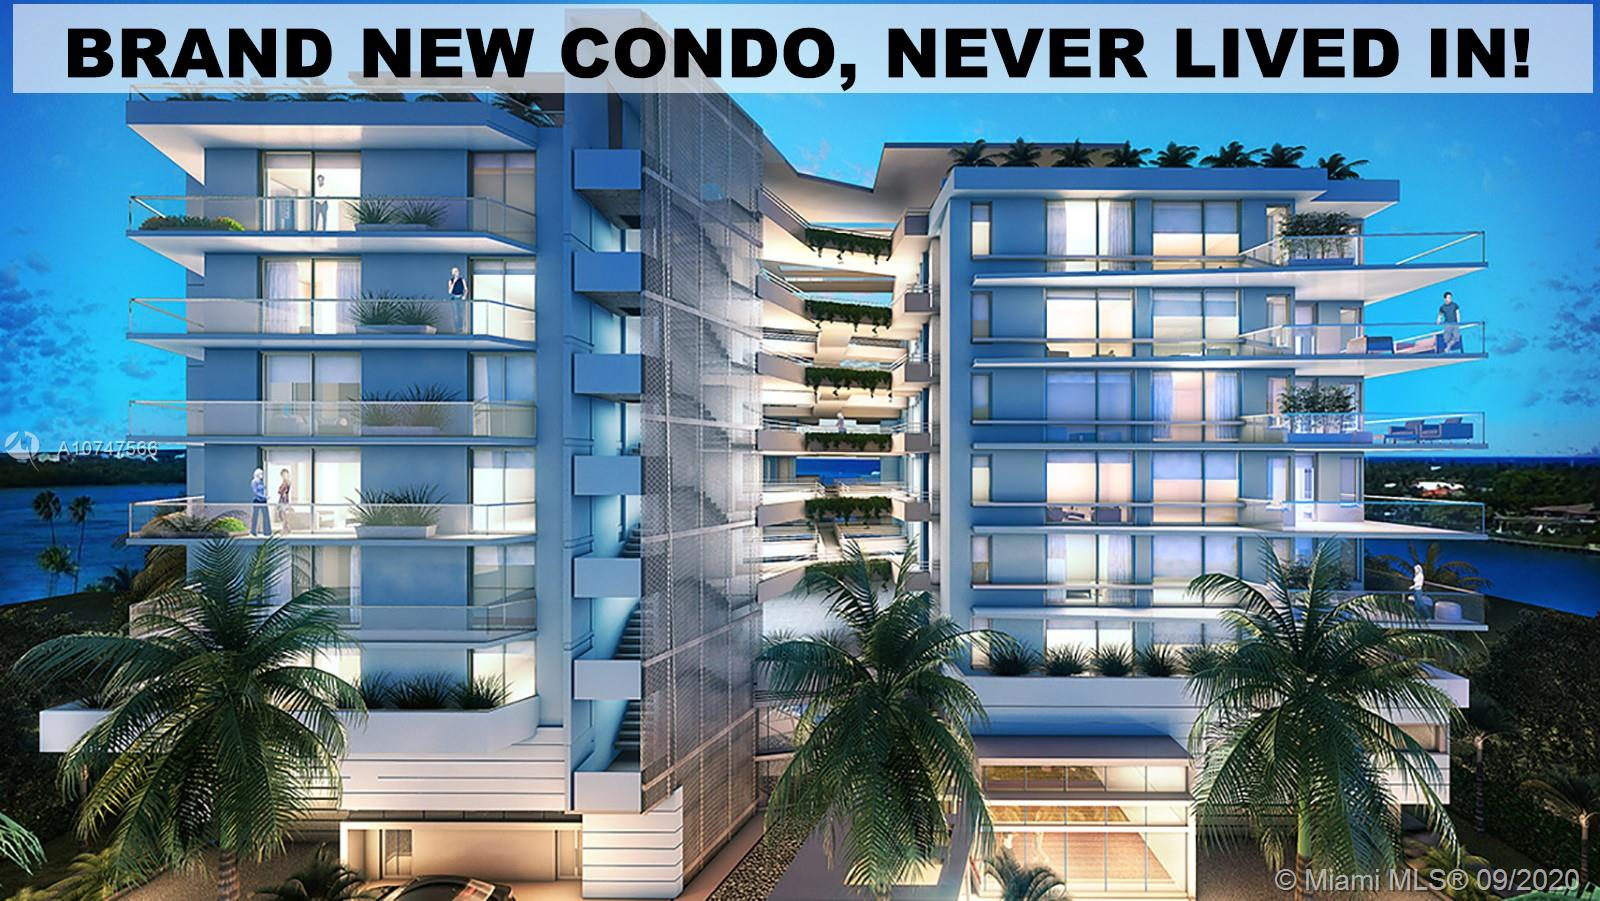 """BRAND NEW CONDO, NEVER LIVED IN! Large 2 beds +den (can be 3rd bdr),2 baths and a huge terrace with partial water view. 2 covered parking spaces + 1 storage cage. Complete Kitchen with top of the line appliances including wine cooler and washer/dryer. The Palms Condo is a boutique waterfront building with a rooftop pool deck, hot tub, rooftop BBQ/entertainment area with amazing views. Located in Bay Harbor Islands, one of Miami's most desirable locations. Walk to """"A"""" rated Ruth K. school (K-8), just minutes to the world-famous Bal Harbour Shops and the sandy beaches of Bal Harbour and Surfside.  The island is perfect for families; playgrounds throughout the island, tennis courts, bicycle paths, citibike rental adjacent to bldg. A one of a kind property in a one of a kind neighborhood."""